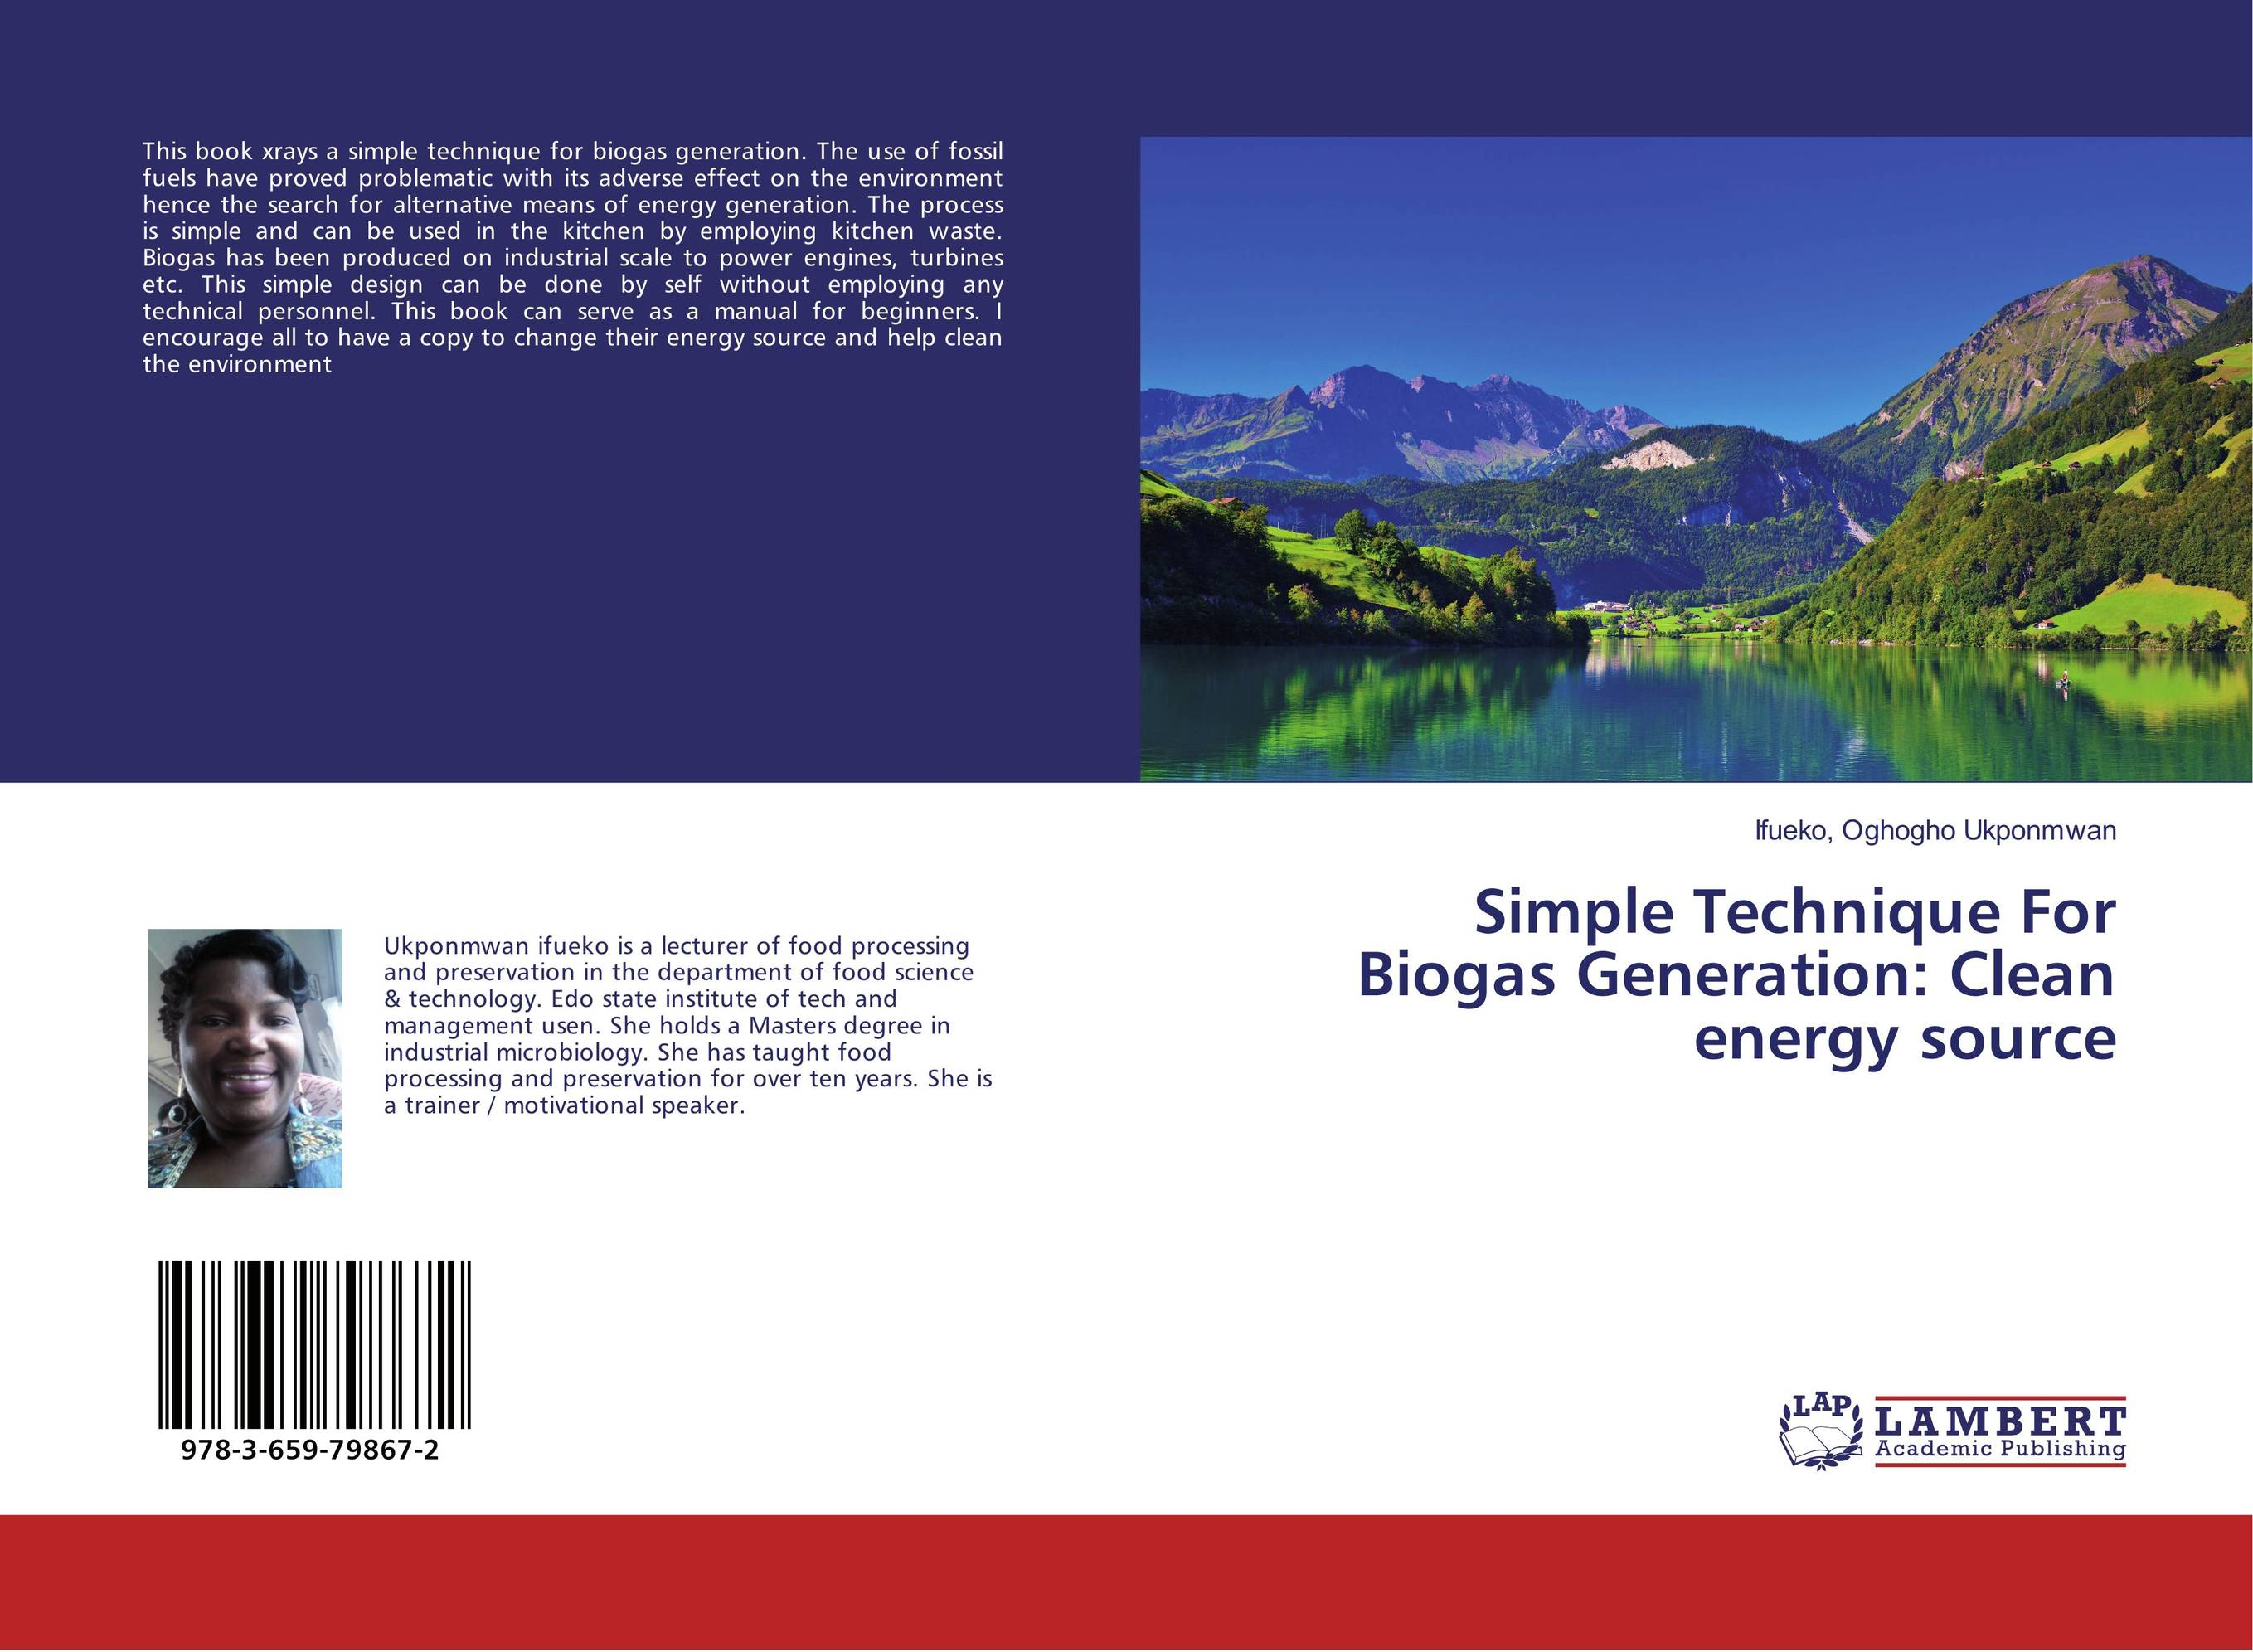 Simple Technique For Biogas Generation: Clean energy source the optimal planning for power generation by waste